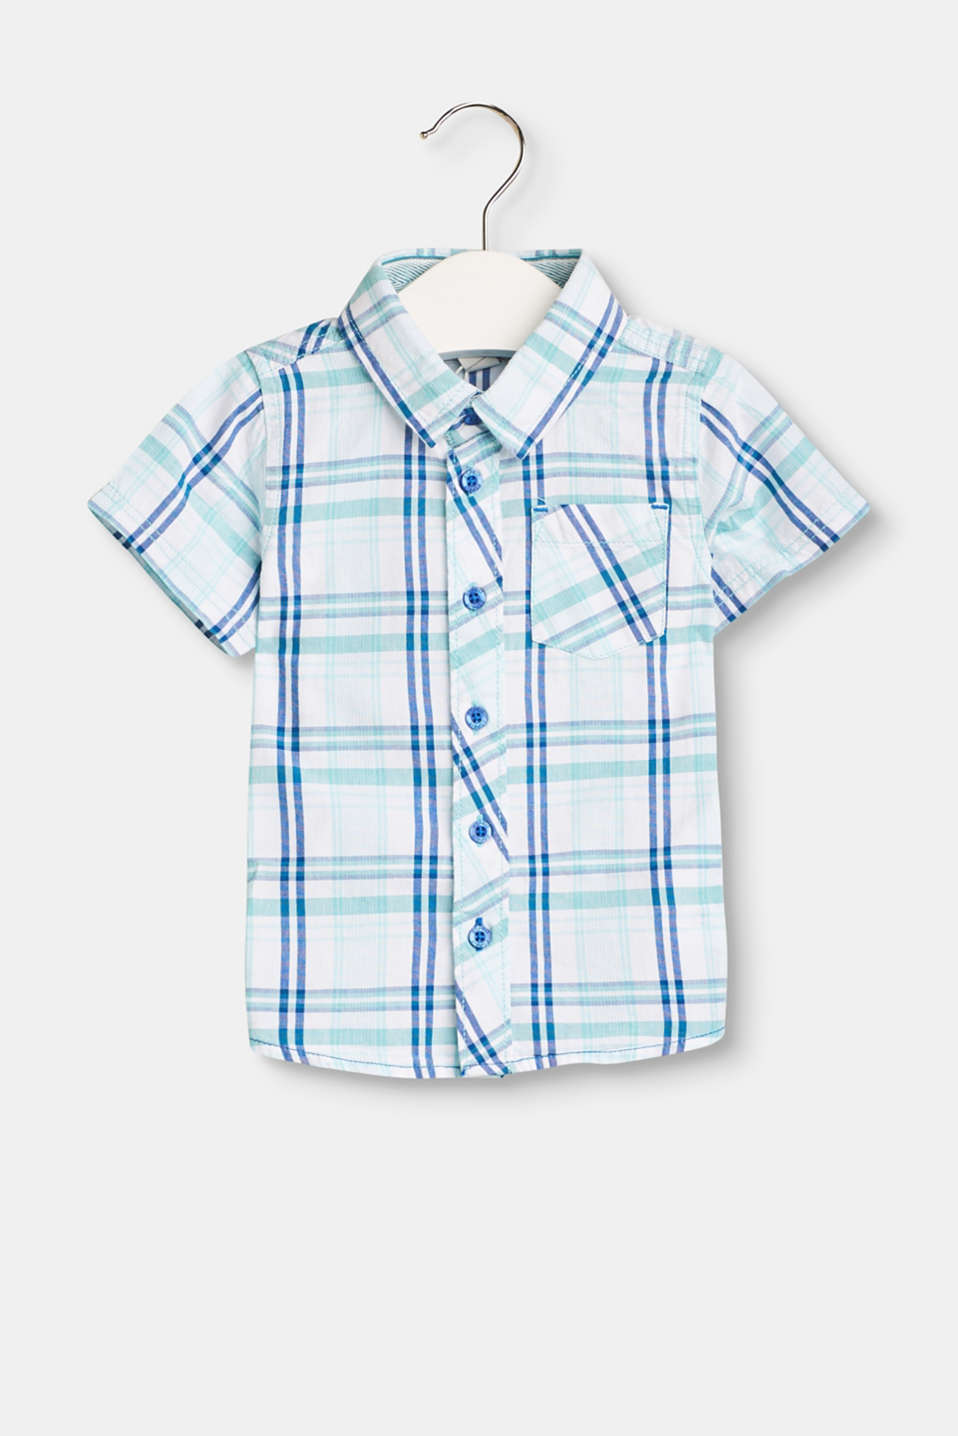 Esprit - Check cotton T-shirt